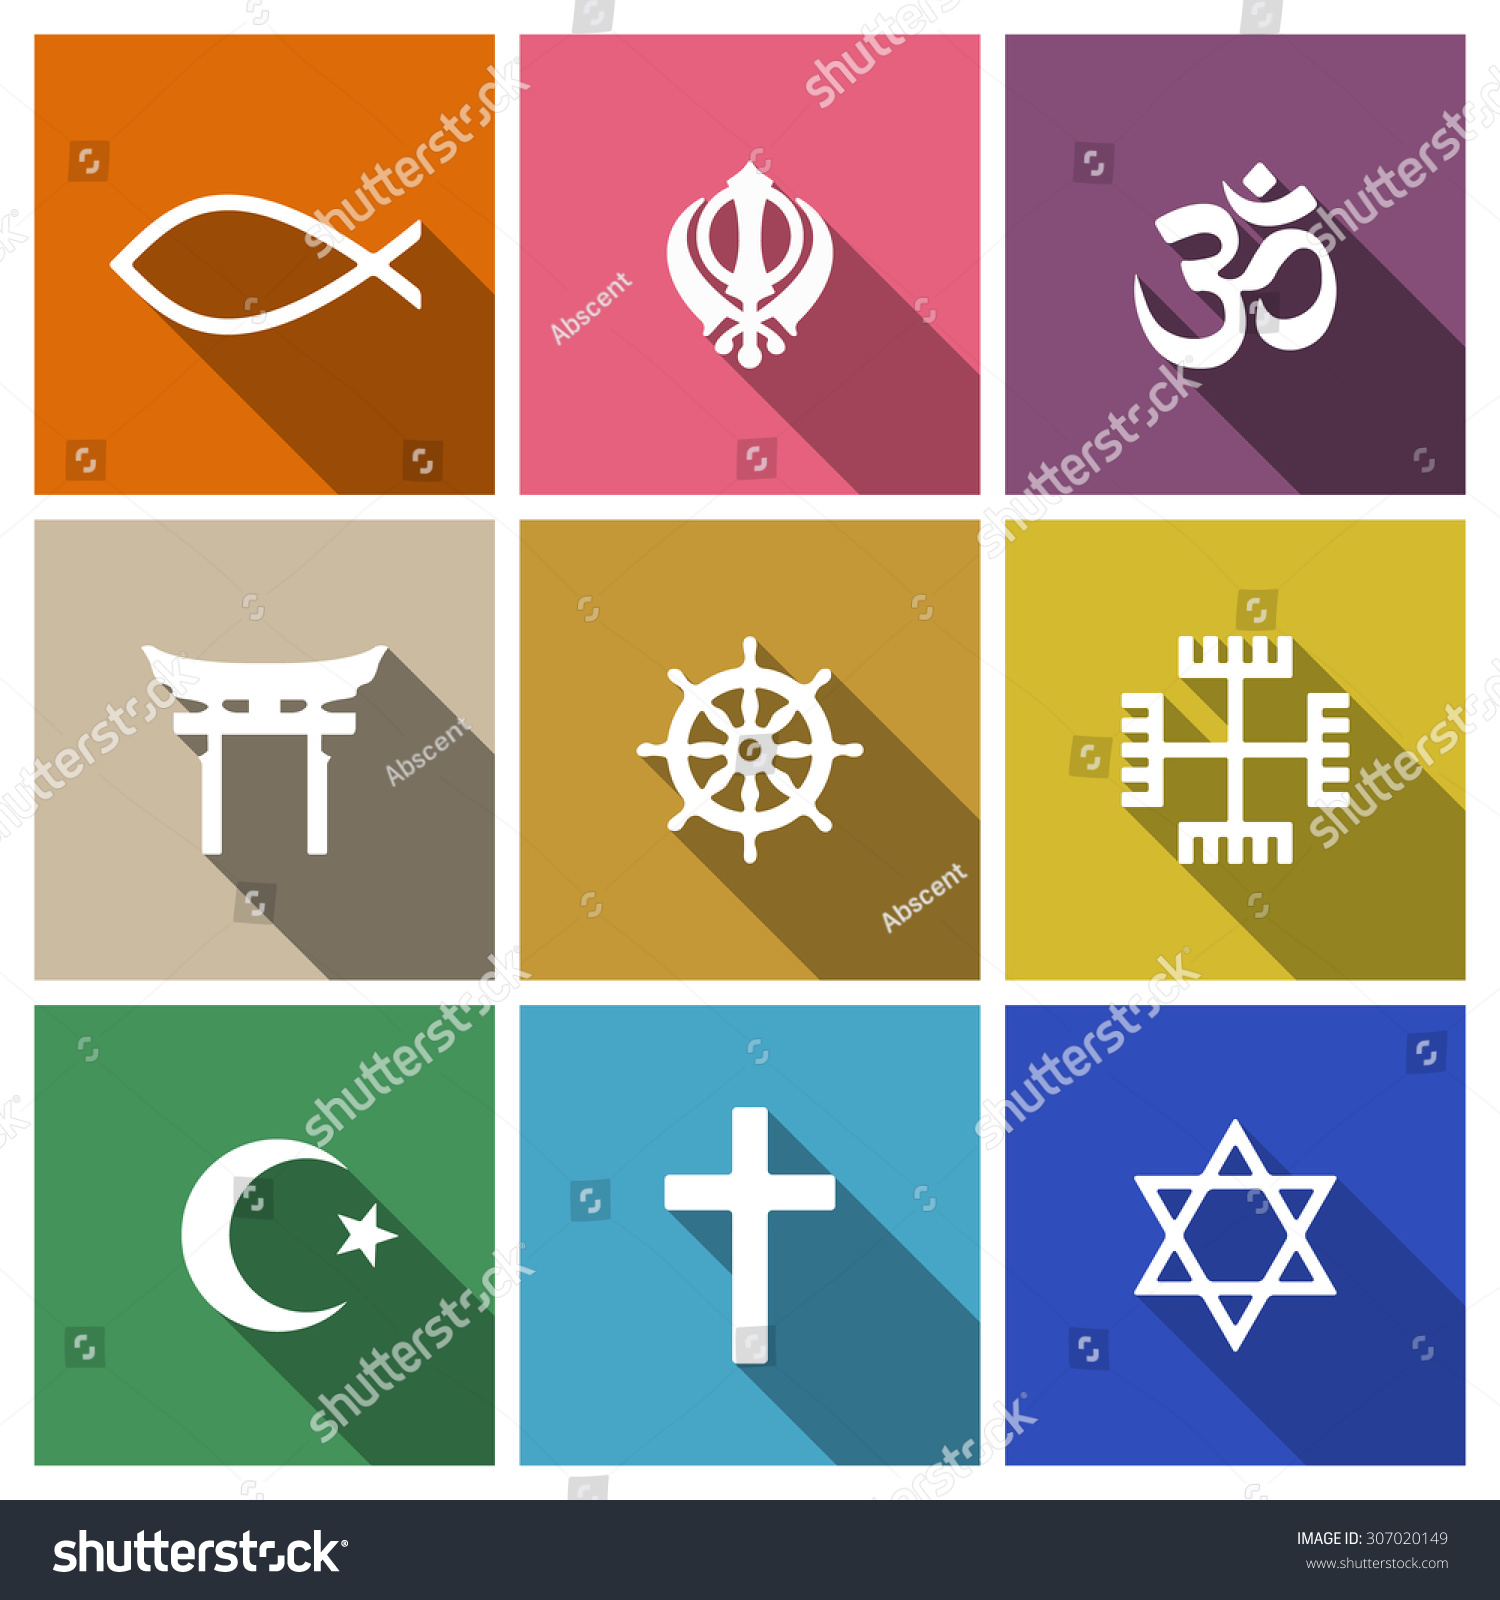 how to become more religious islam